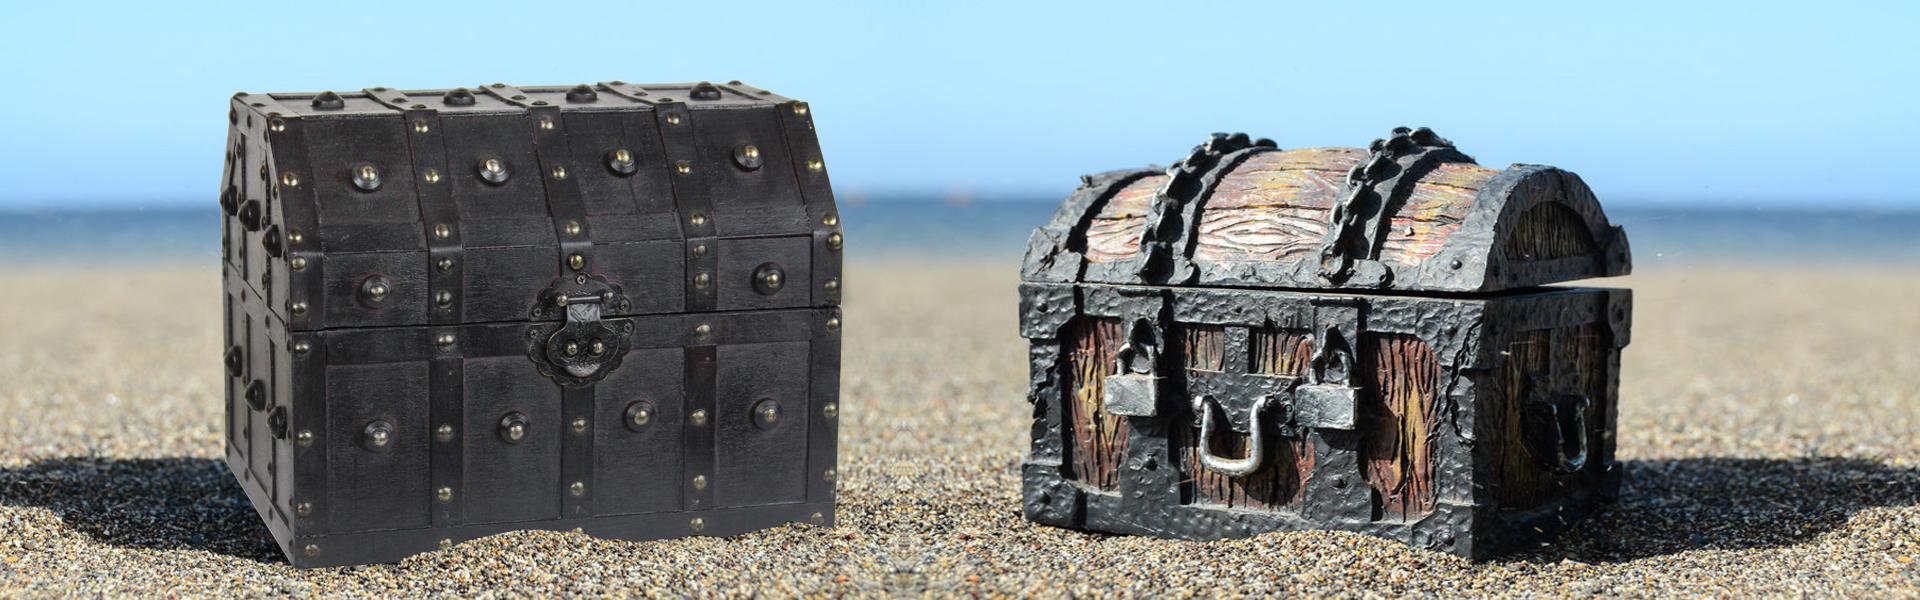 Pirate chest at beach